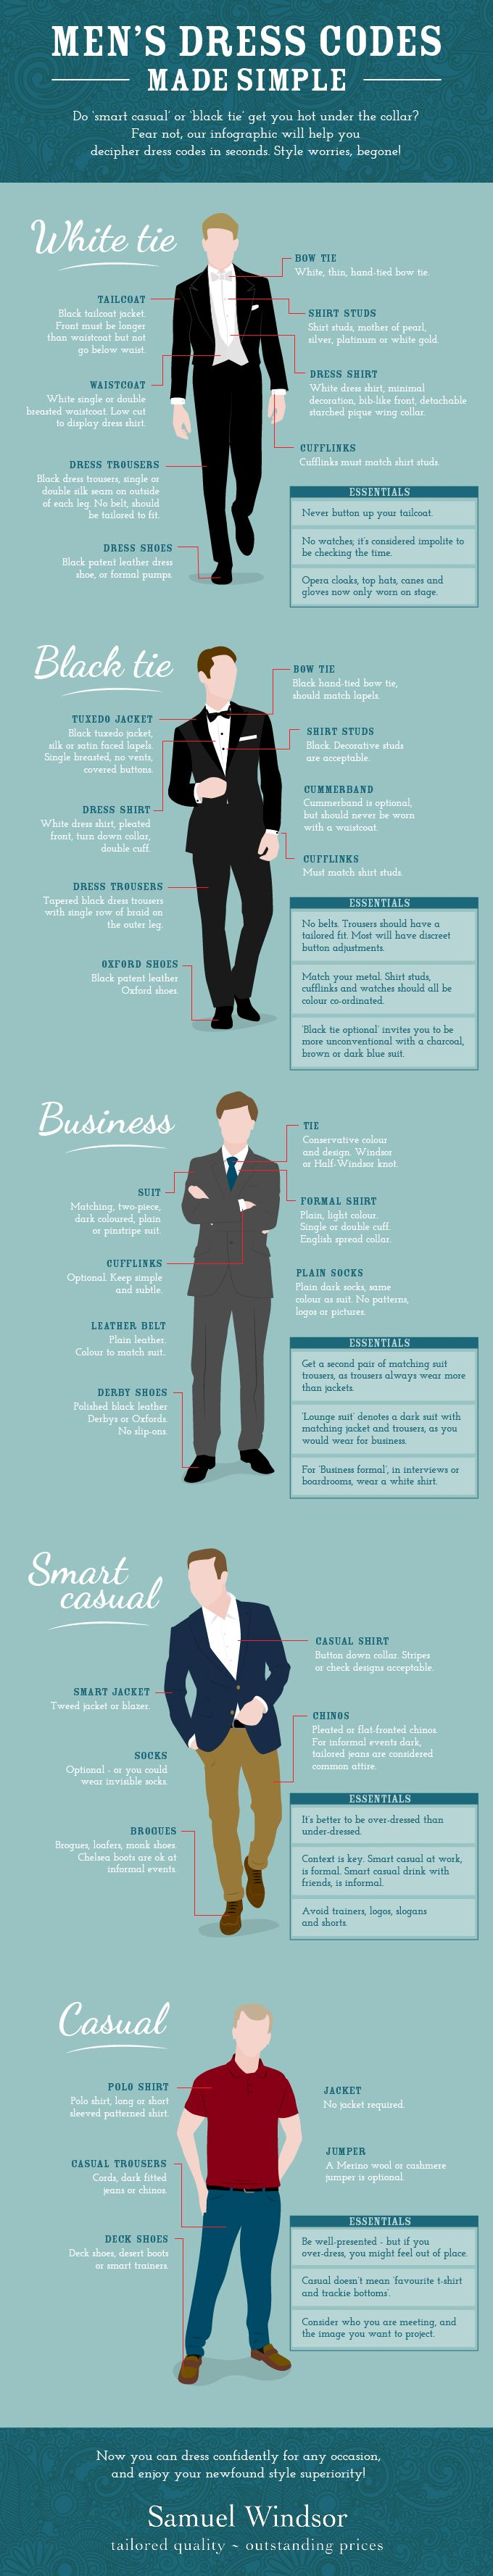 Mens dress codes can be confusing. So use our dress code infographic to ensure you dress impeccably for every event.